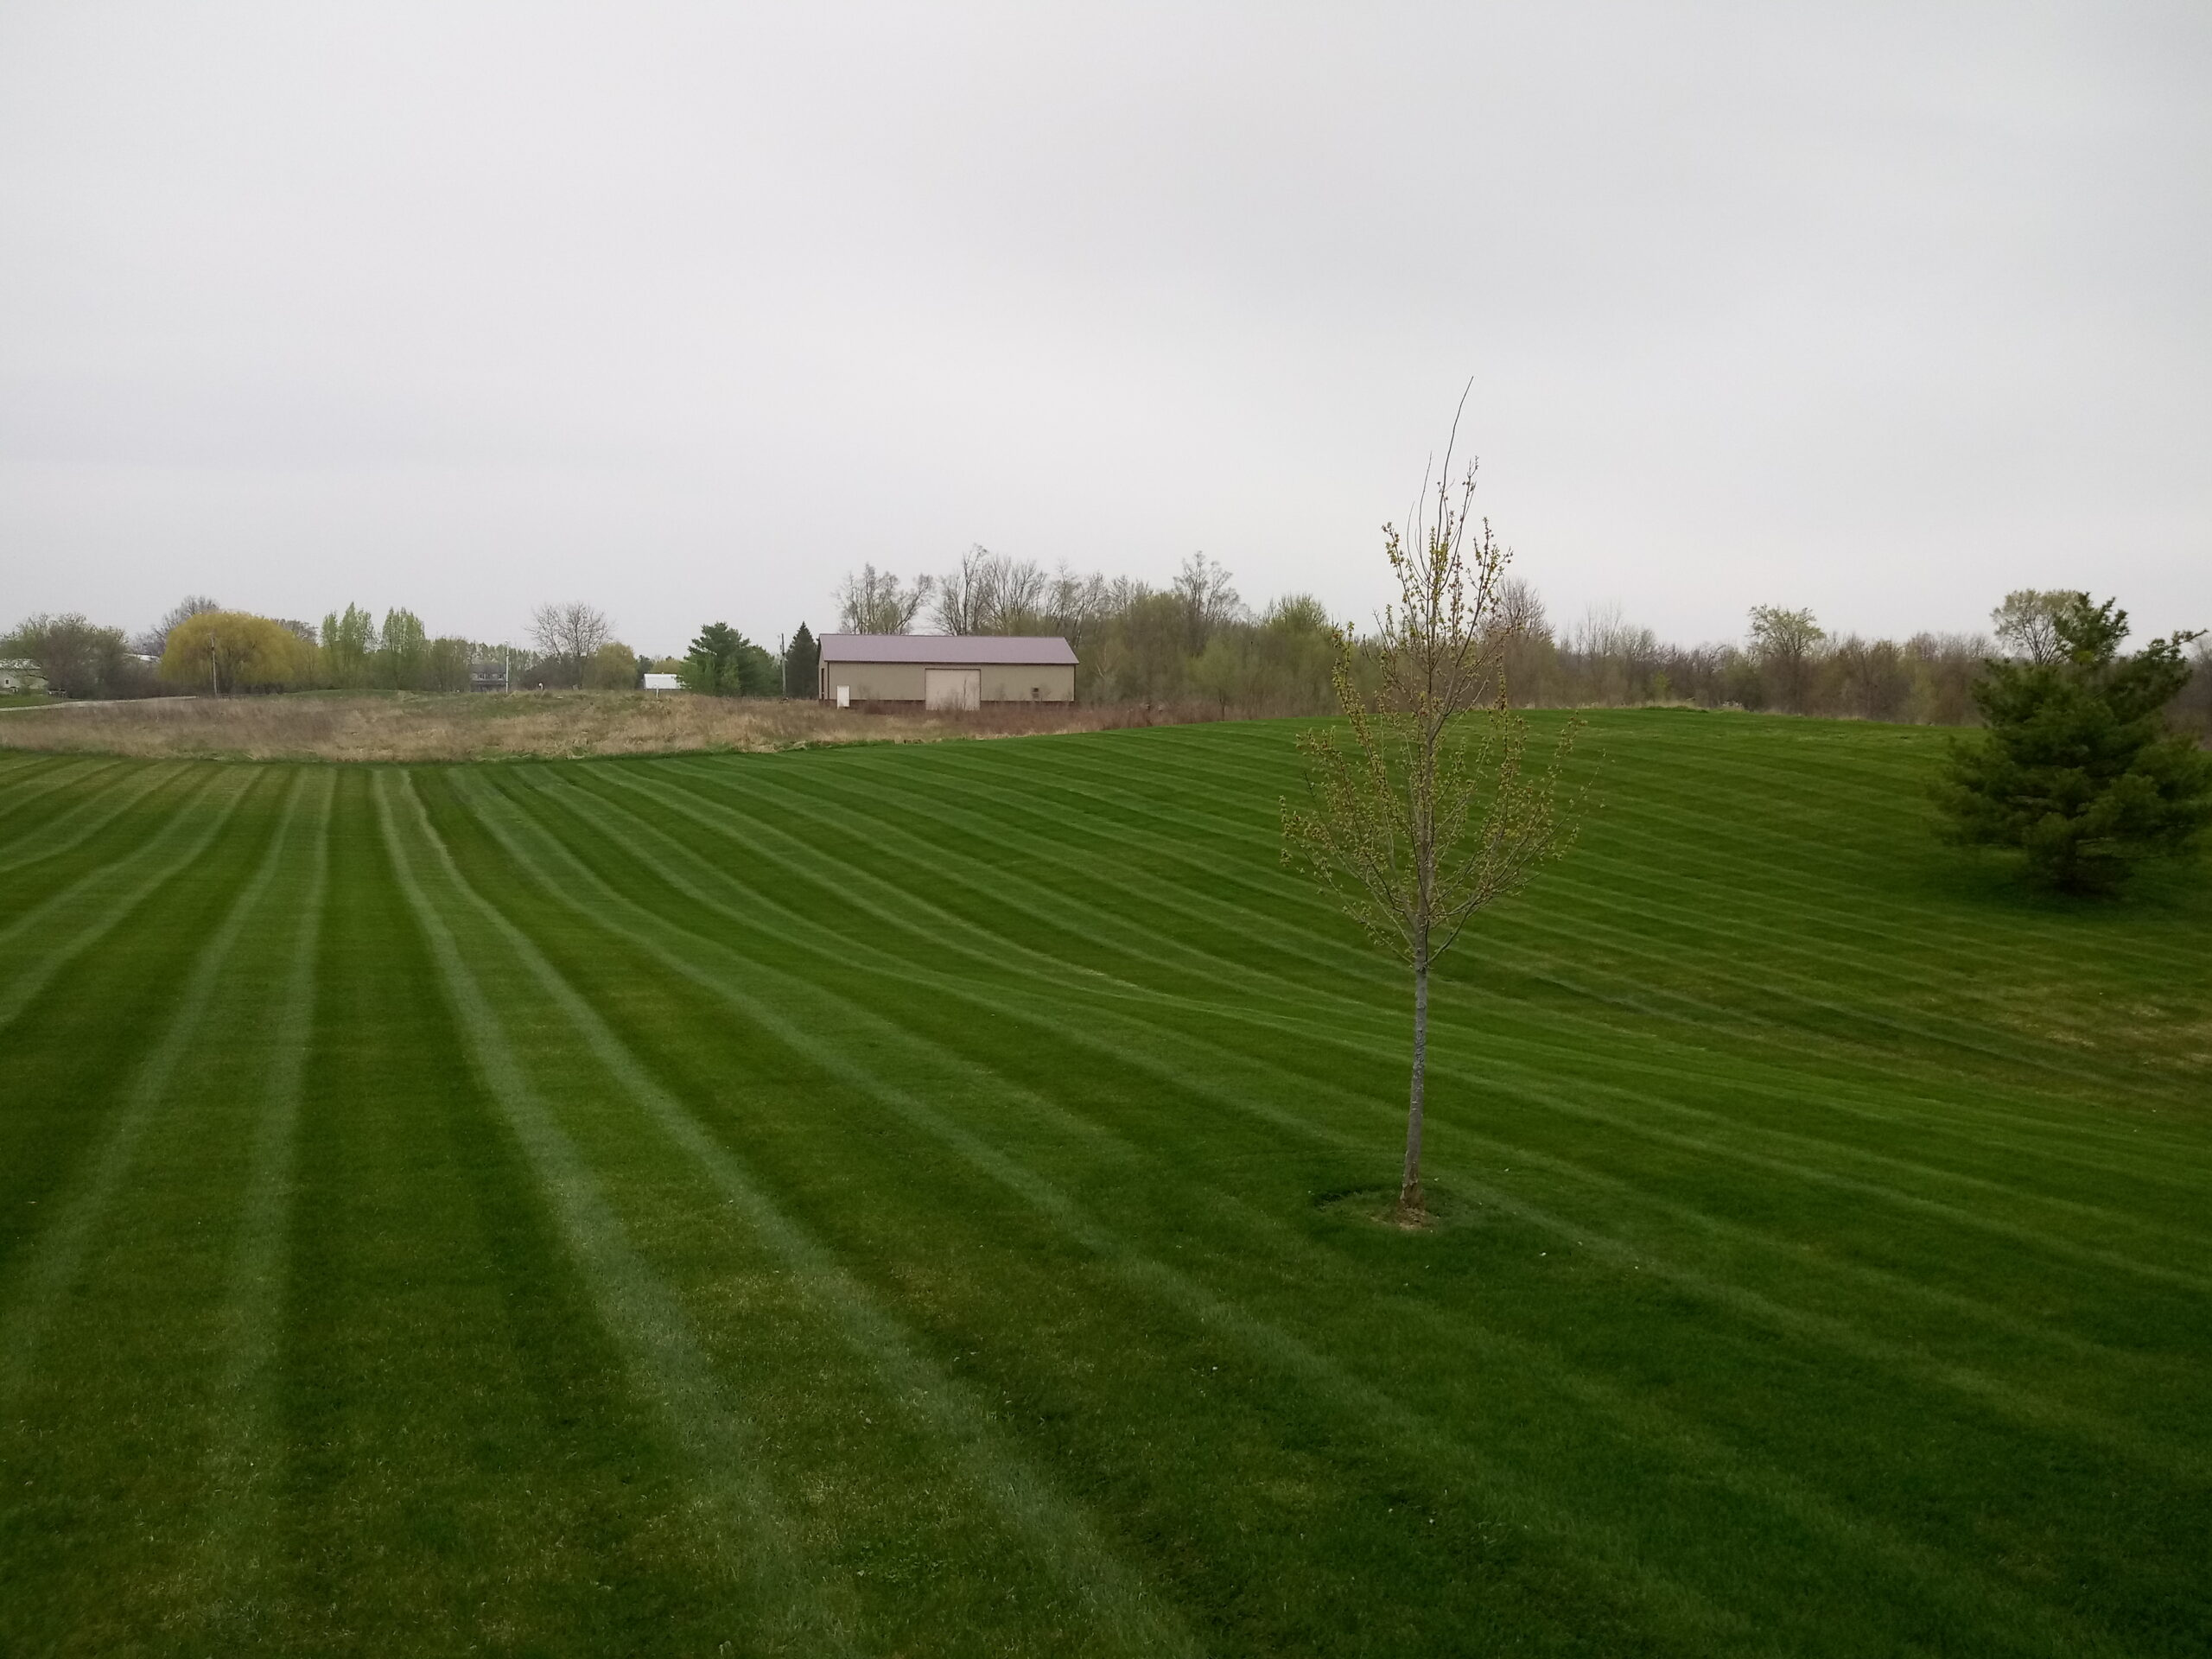 Lawn Care Service, Mowing, Greater Fort Wayne Area